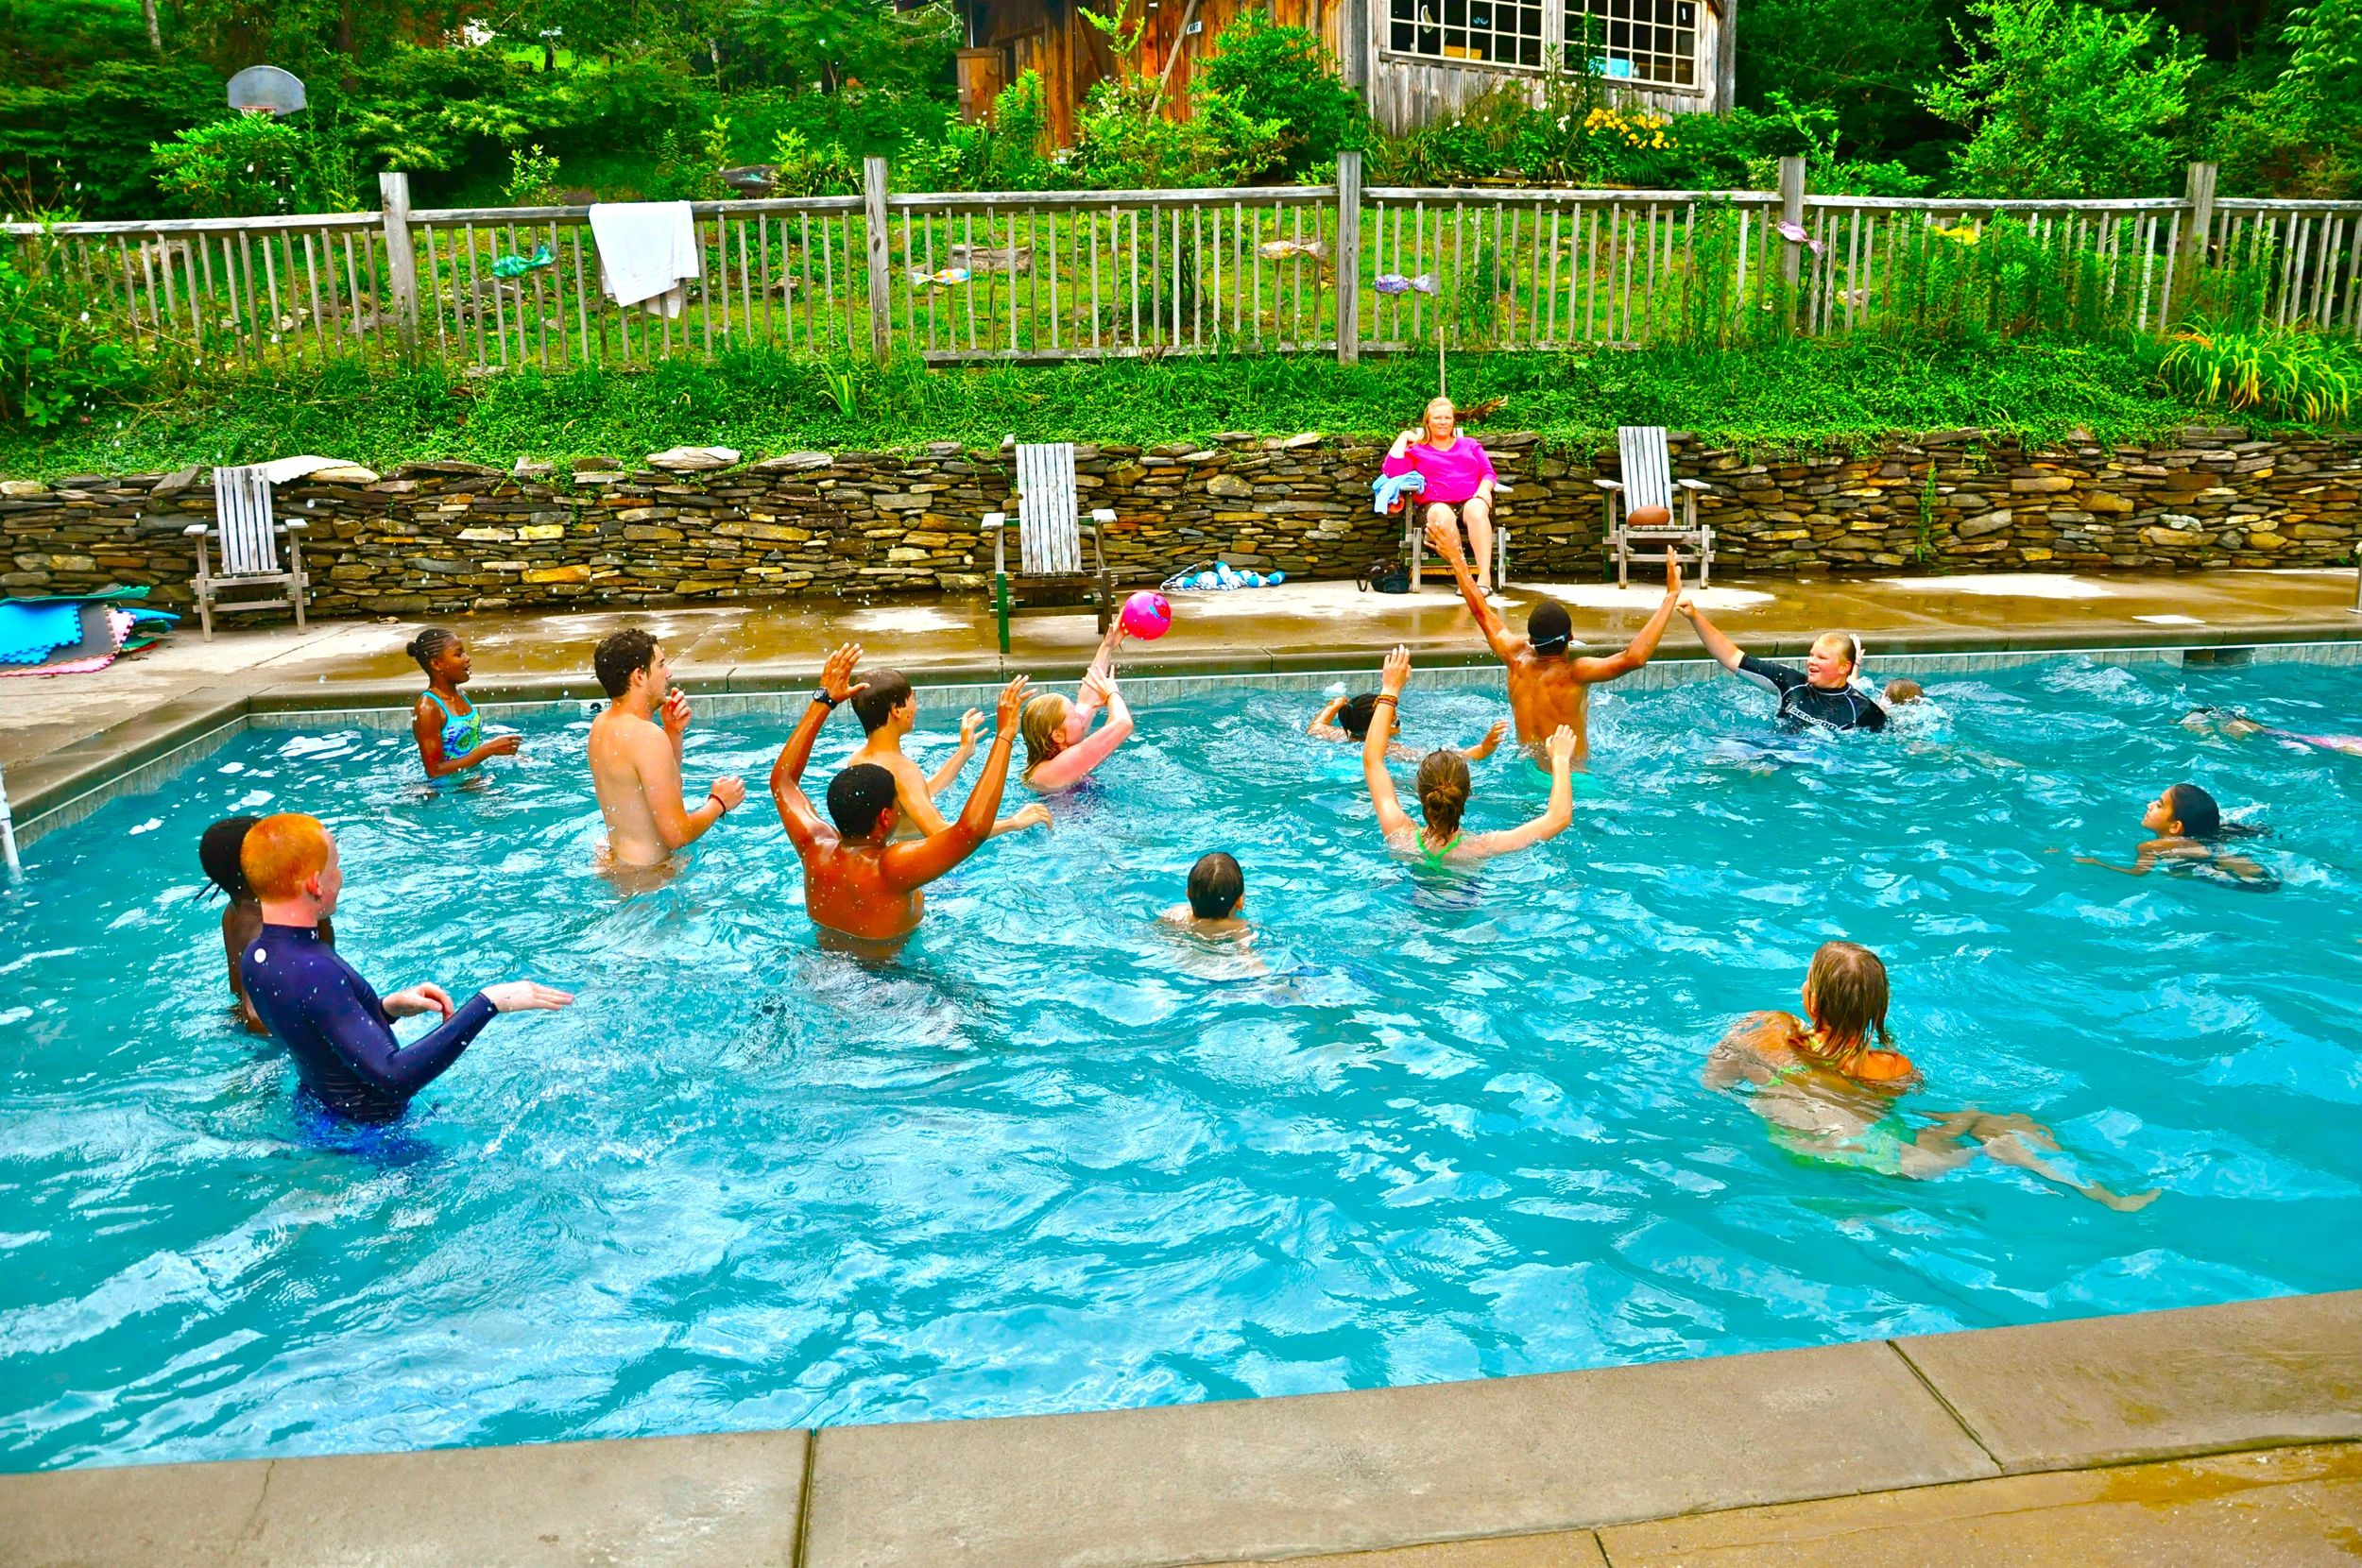 water-polo-is-one-of-the-campers-favorite-activities-to-do-in-the-evenings.jpg